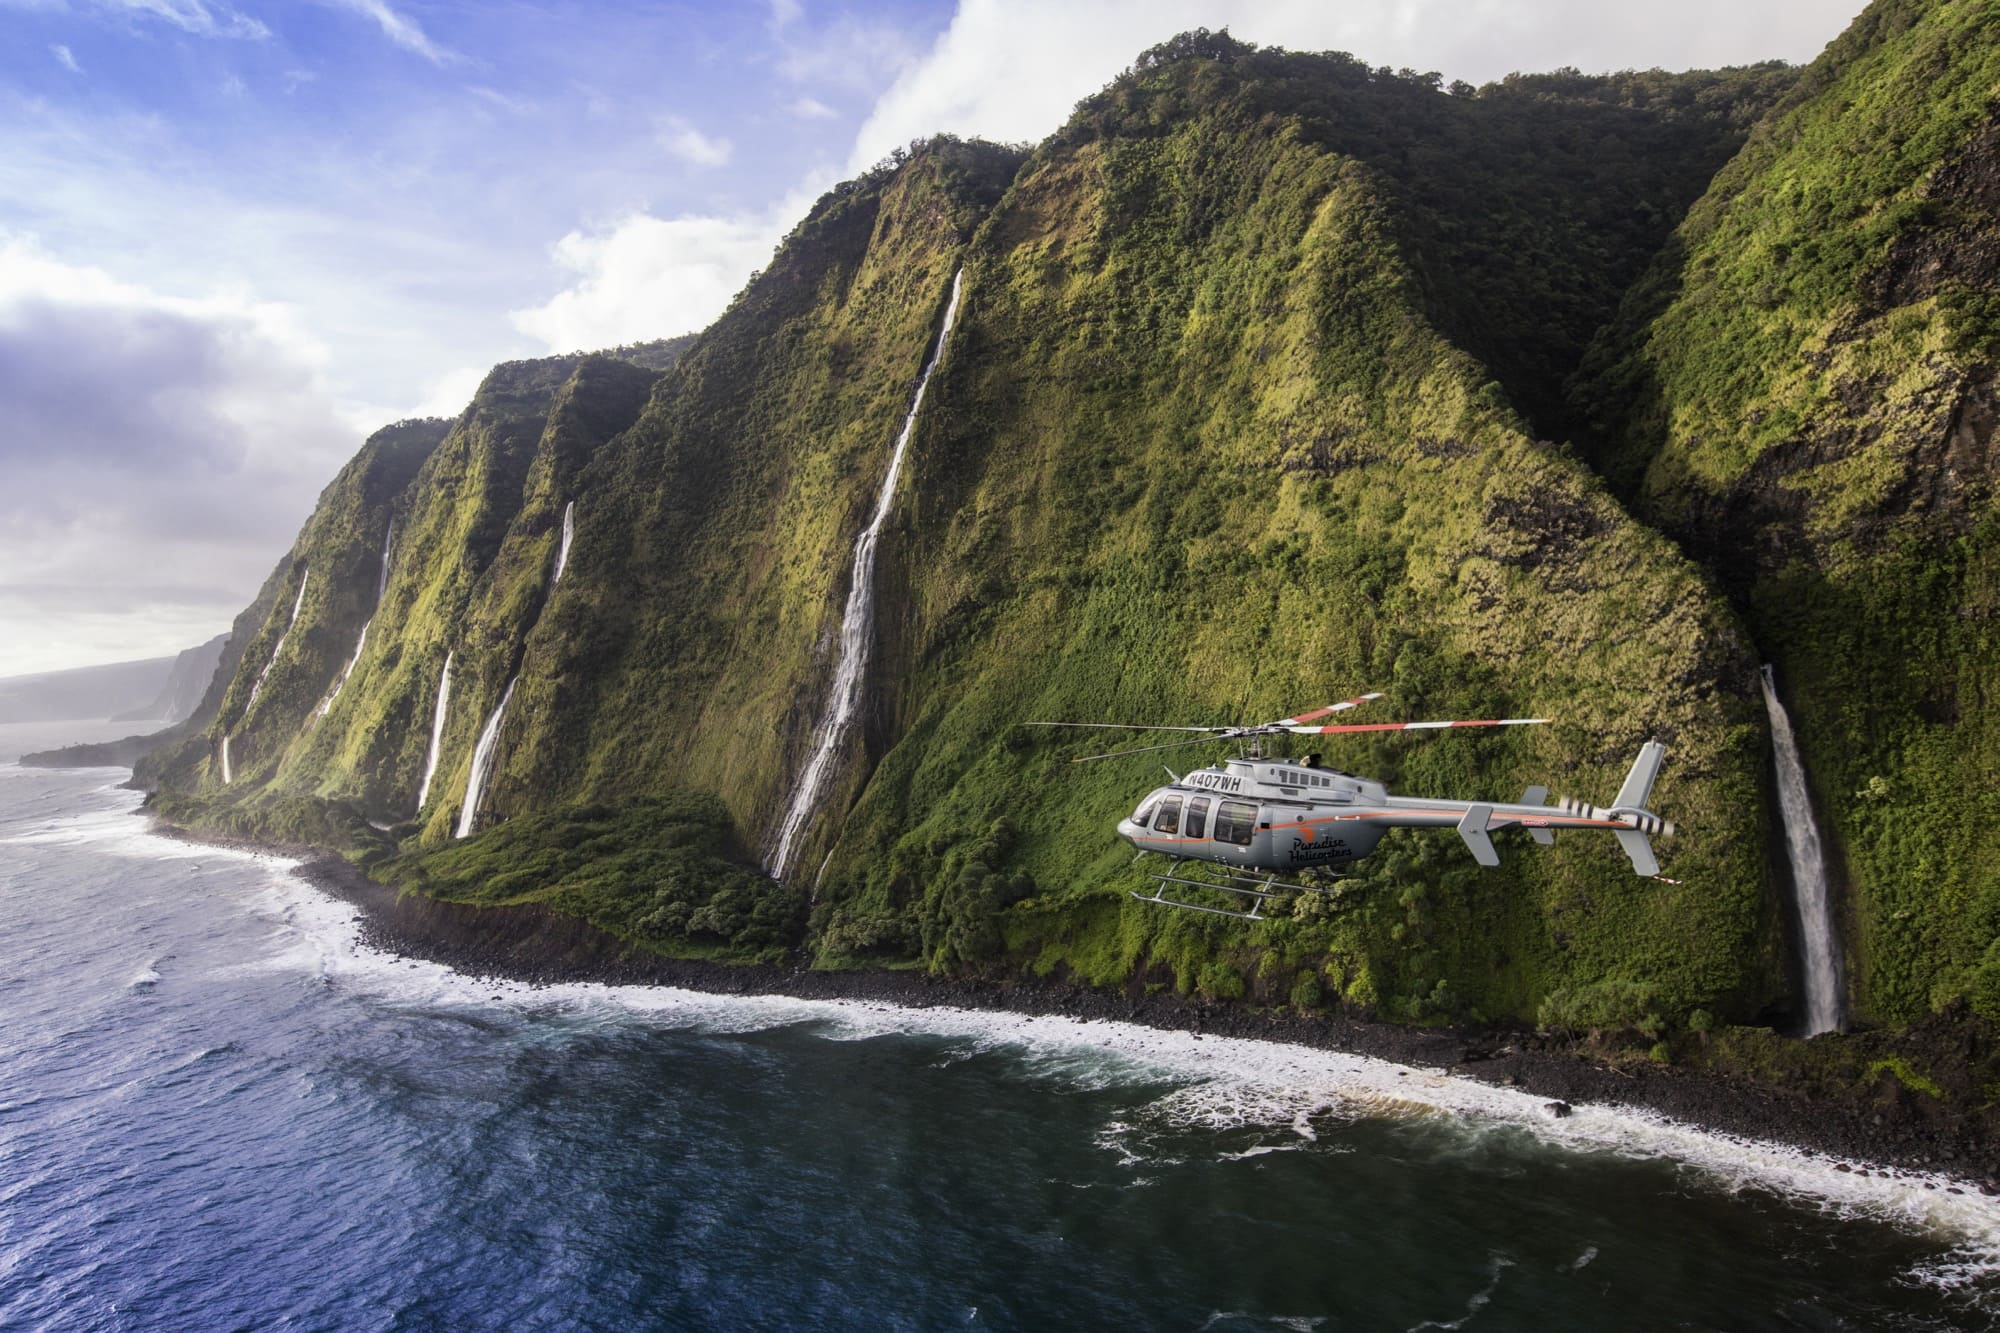 Helicopter tours from Kona